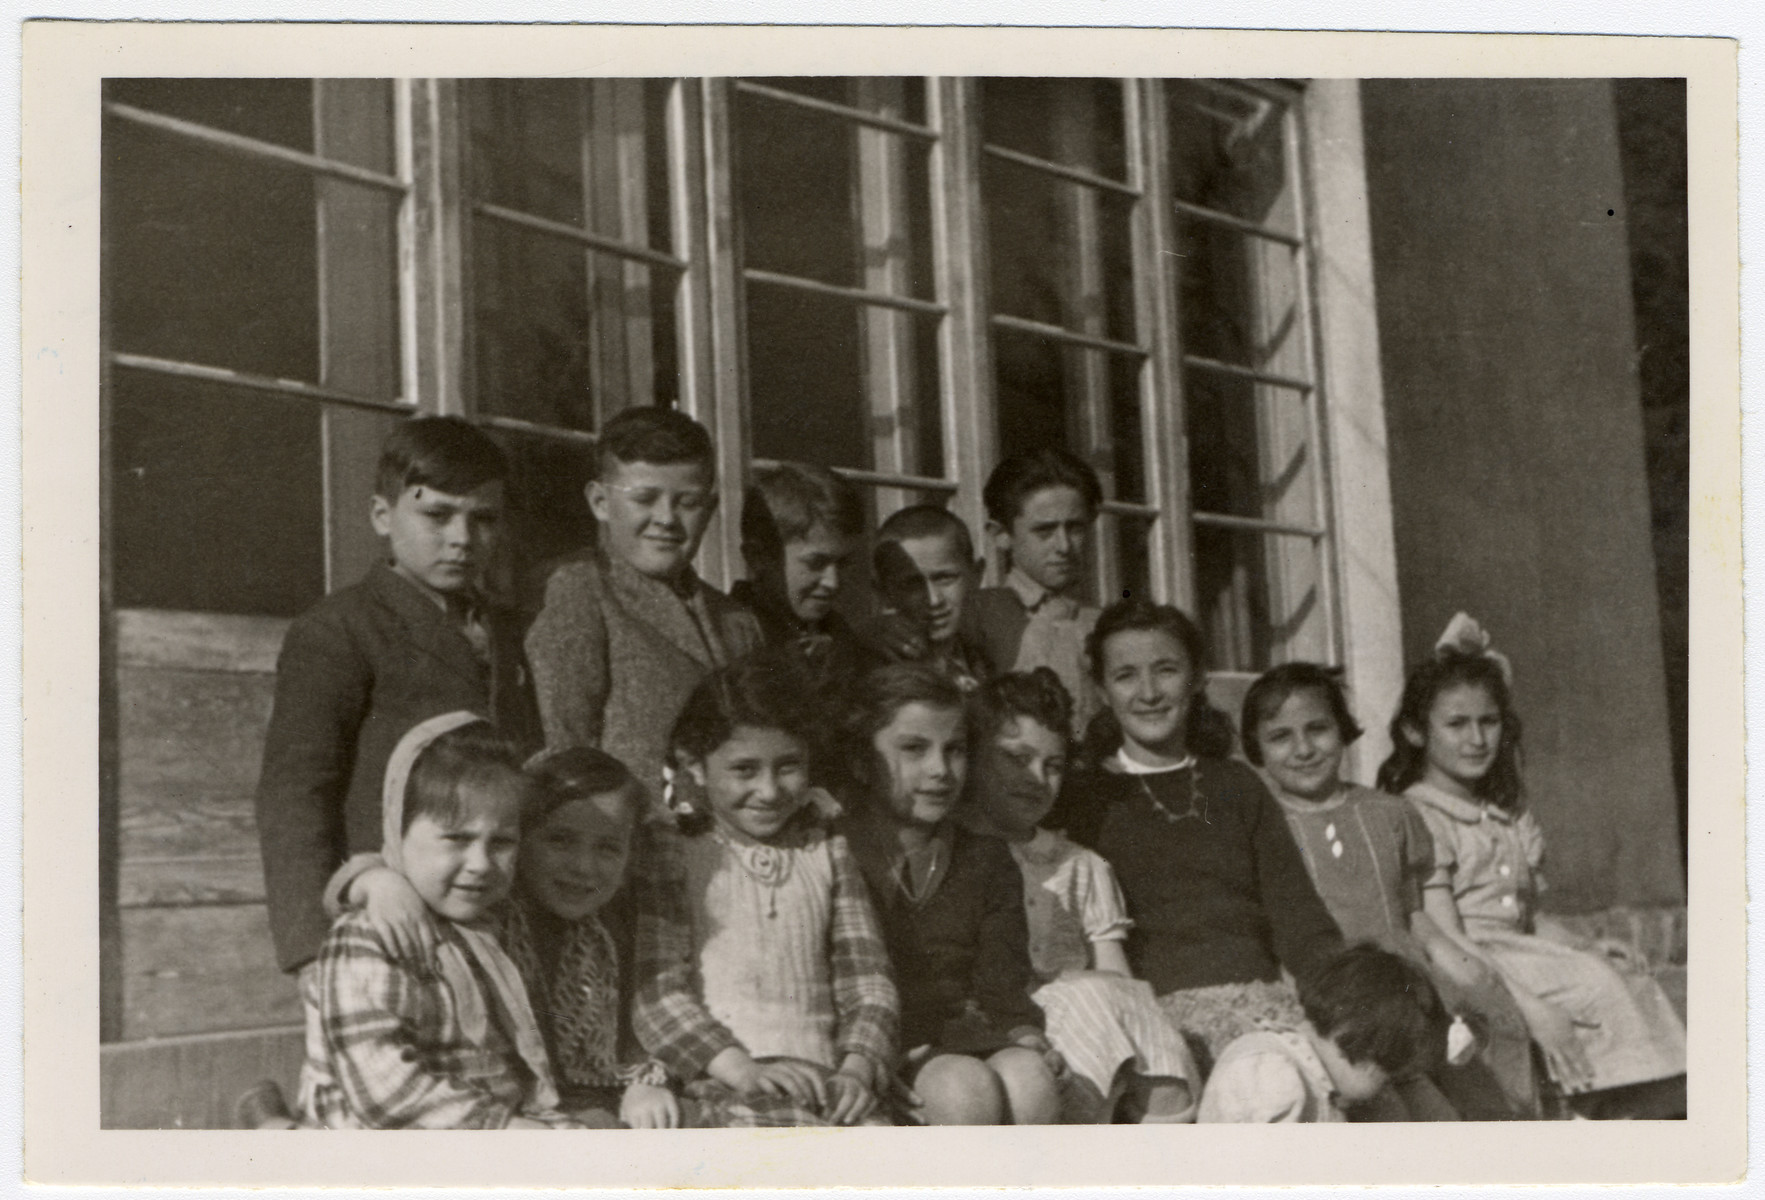 Portrait of young children in the Ziegenhain displaced persons' camp.